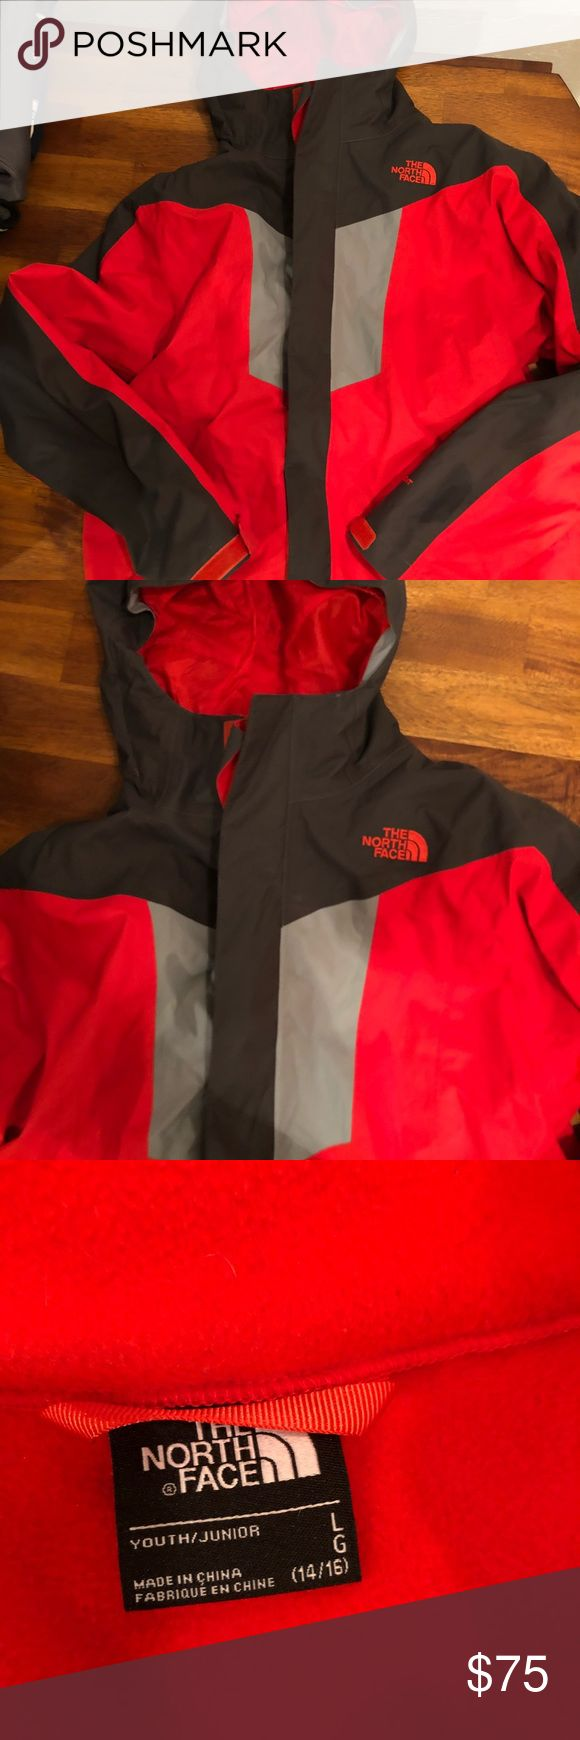 The North Face Boys Coat (14/16) Red and black The North Face coat with removable lining. In great condition with very small mark on back as shown on picture.  Size youth large 14/16 The North Face Jackets & Coats